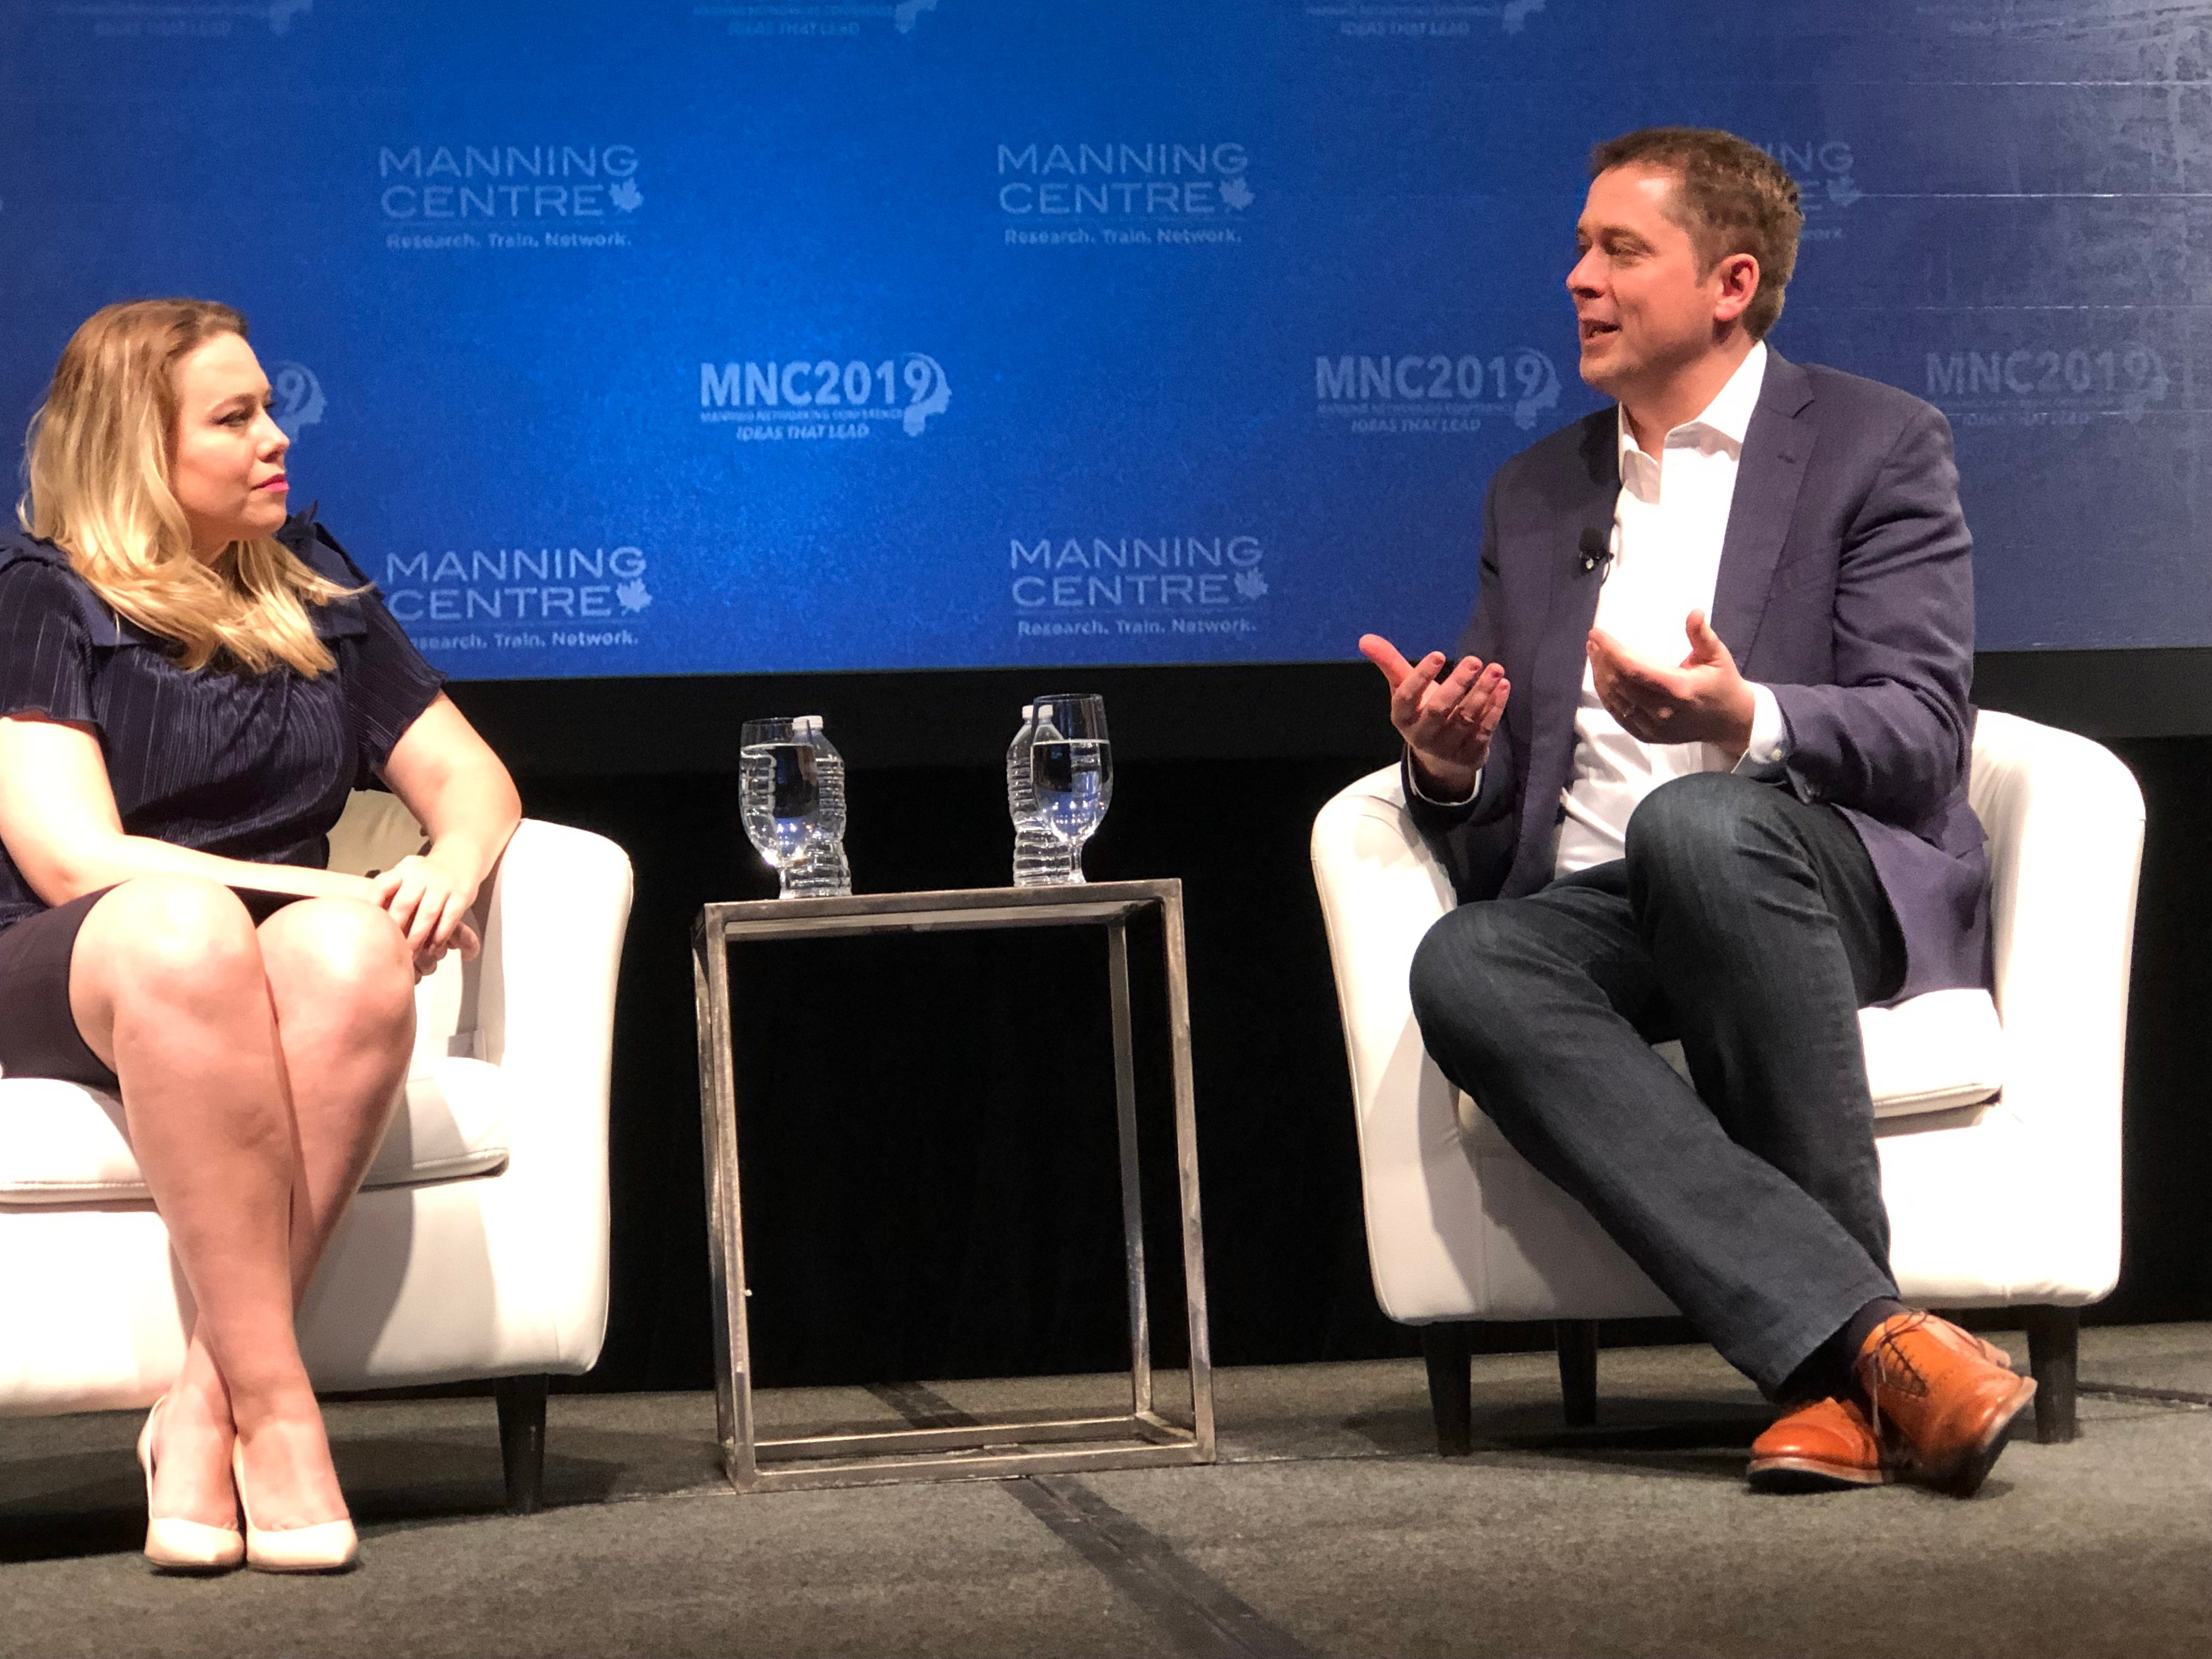 Conservative Party of Canada Leader Andrew Scheer discusses Canadian politics with CTV News anchor Mercedes Stephenson at the Manning Networking Conference in Ottawa, Canada on March 23, 2019. Daily Caller photo by Janet Krayden.